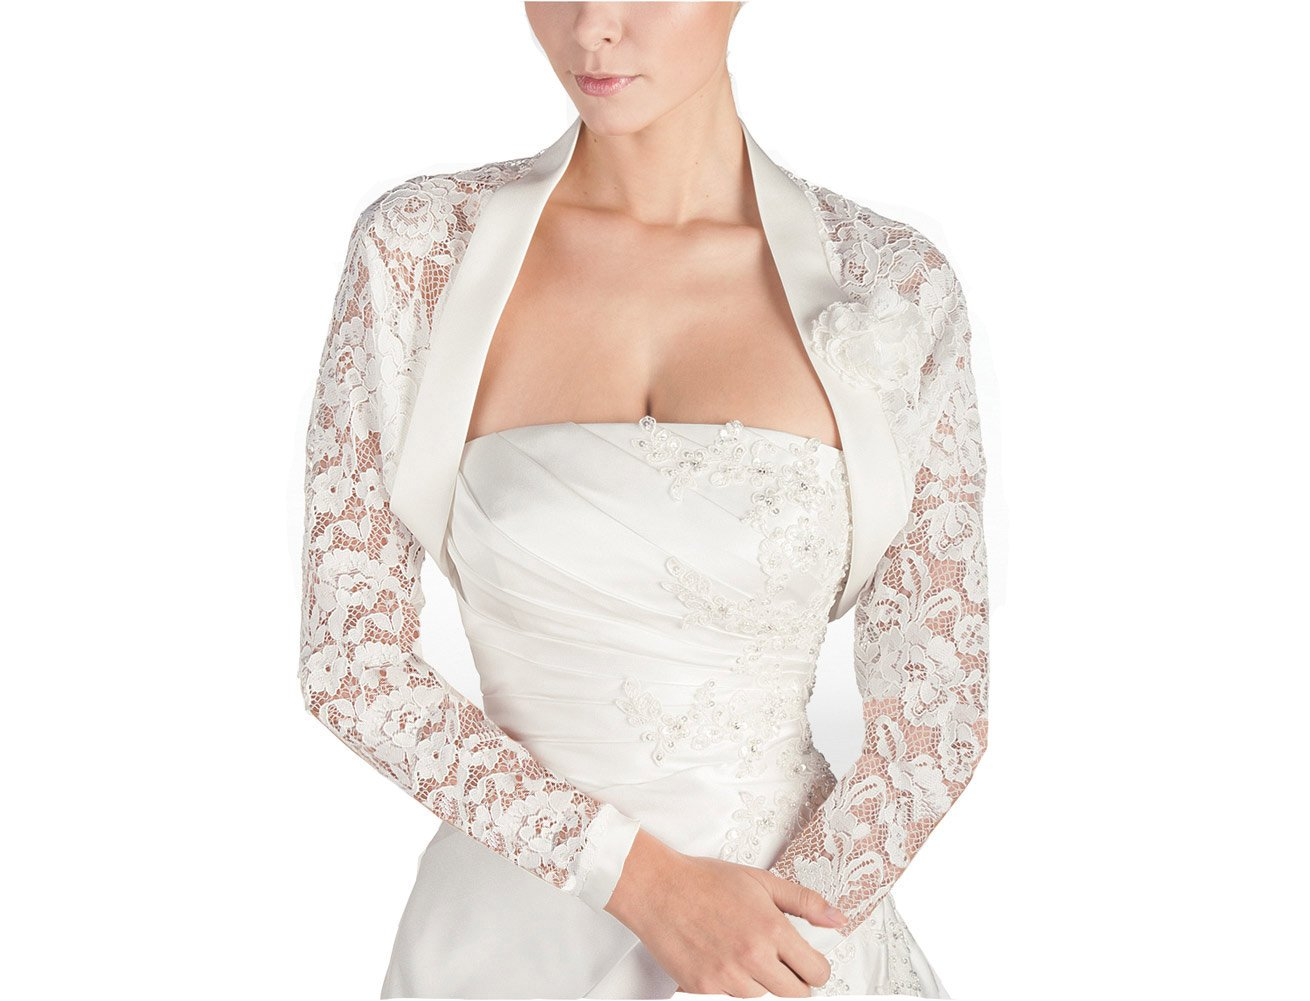 GEORGE BRIDE Women's 3/4 Sleeve Length Lace Bridal Jacket(M-long Sleeve, White) by GEORGE BRIDE